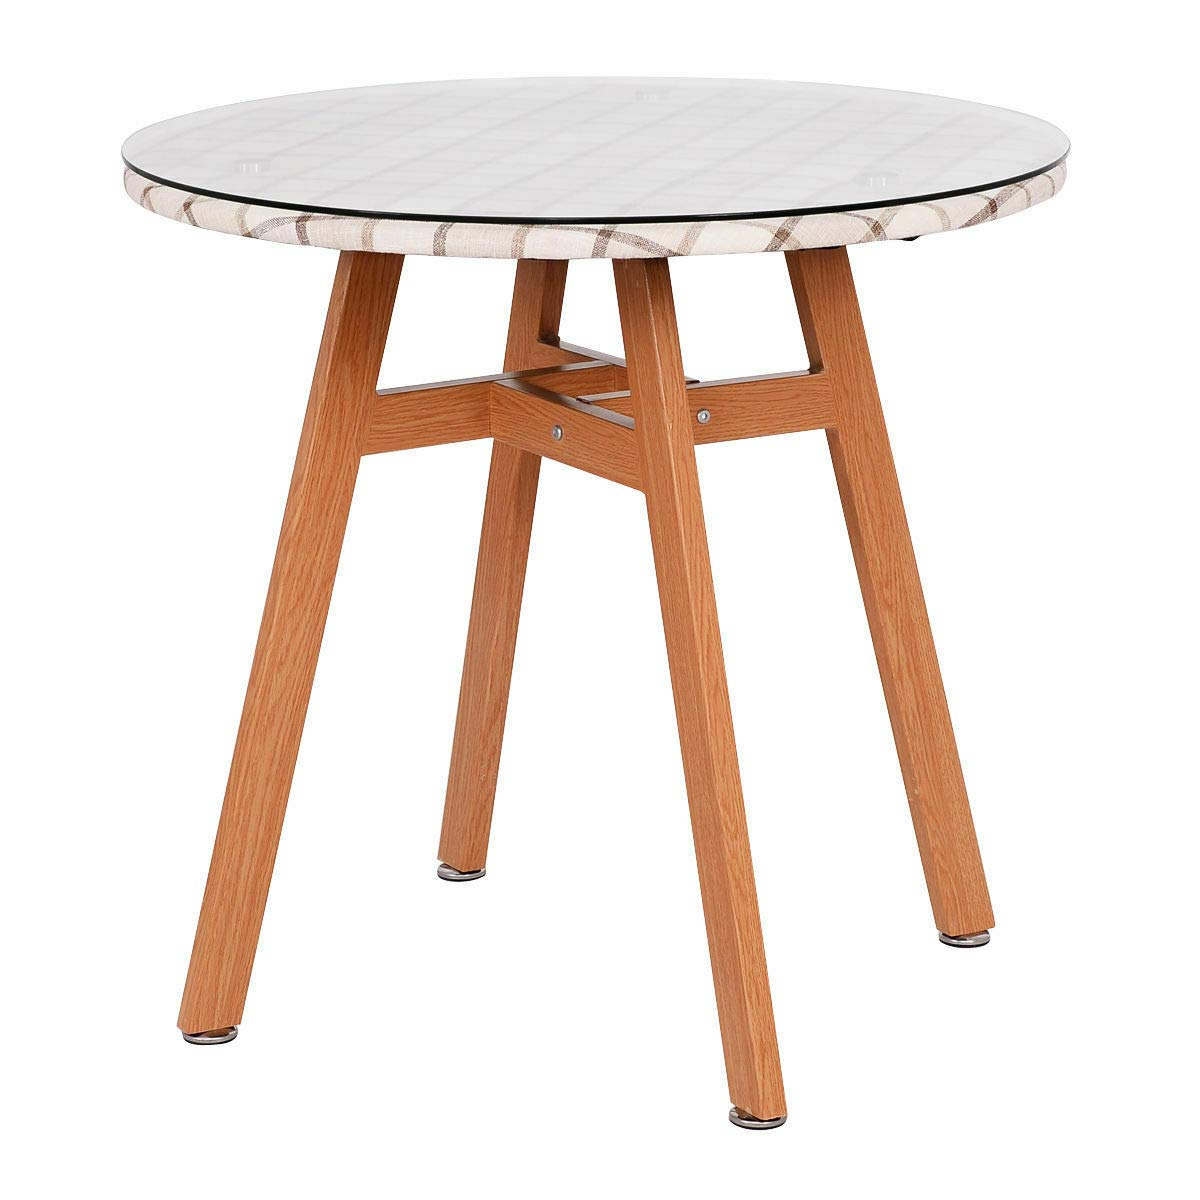 Giantex Round Dining Table Steel Frame Tempered Glass Top Home Decor Kitchen Furniture